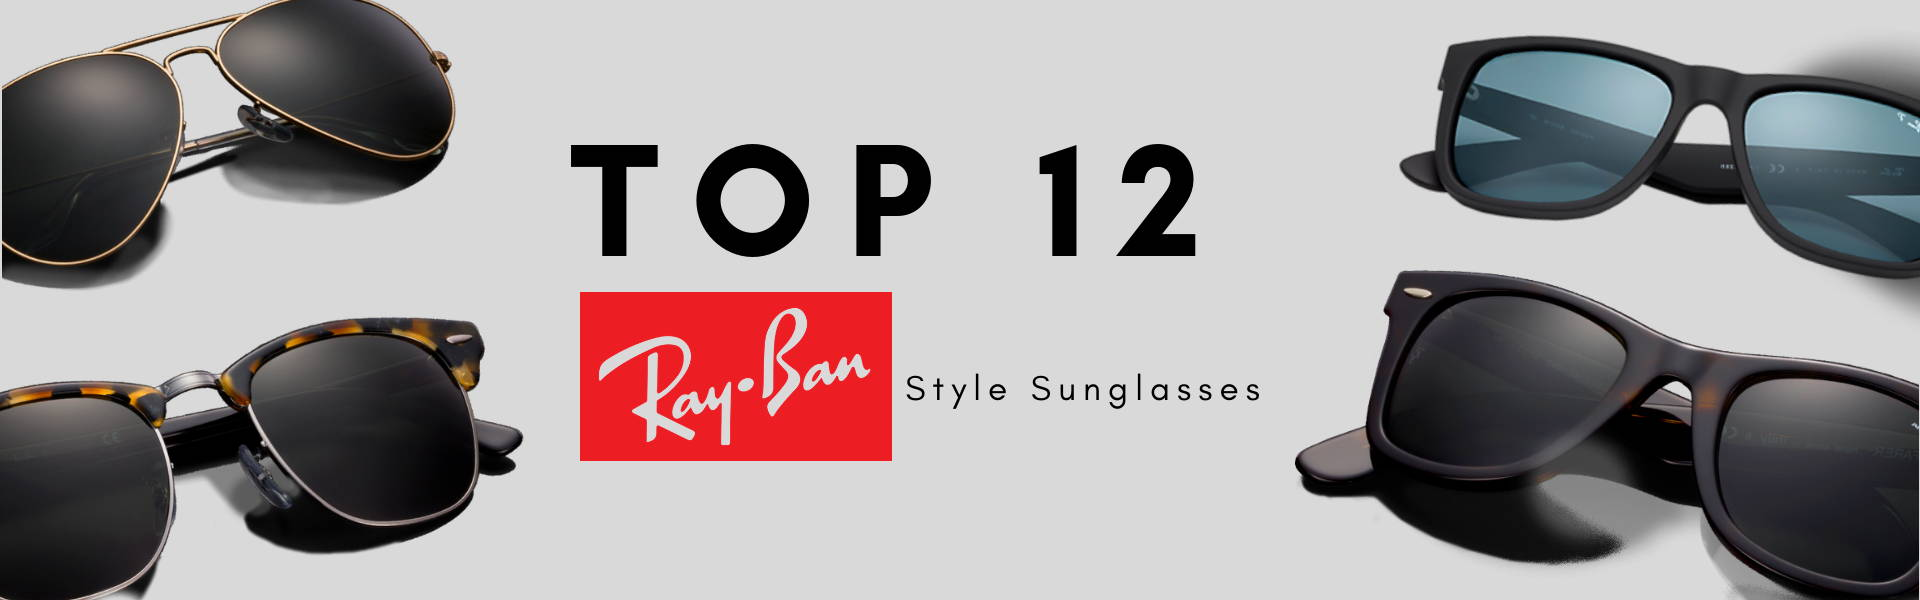 Top 12 Ray-Ban Style Sunglasses